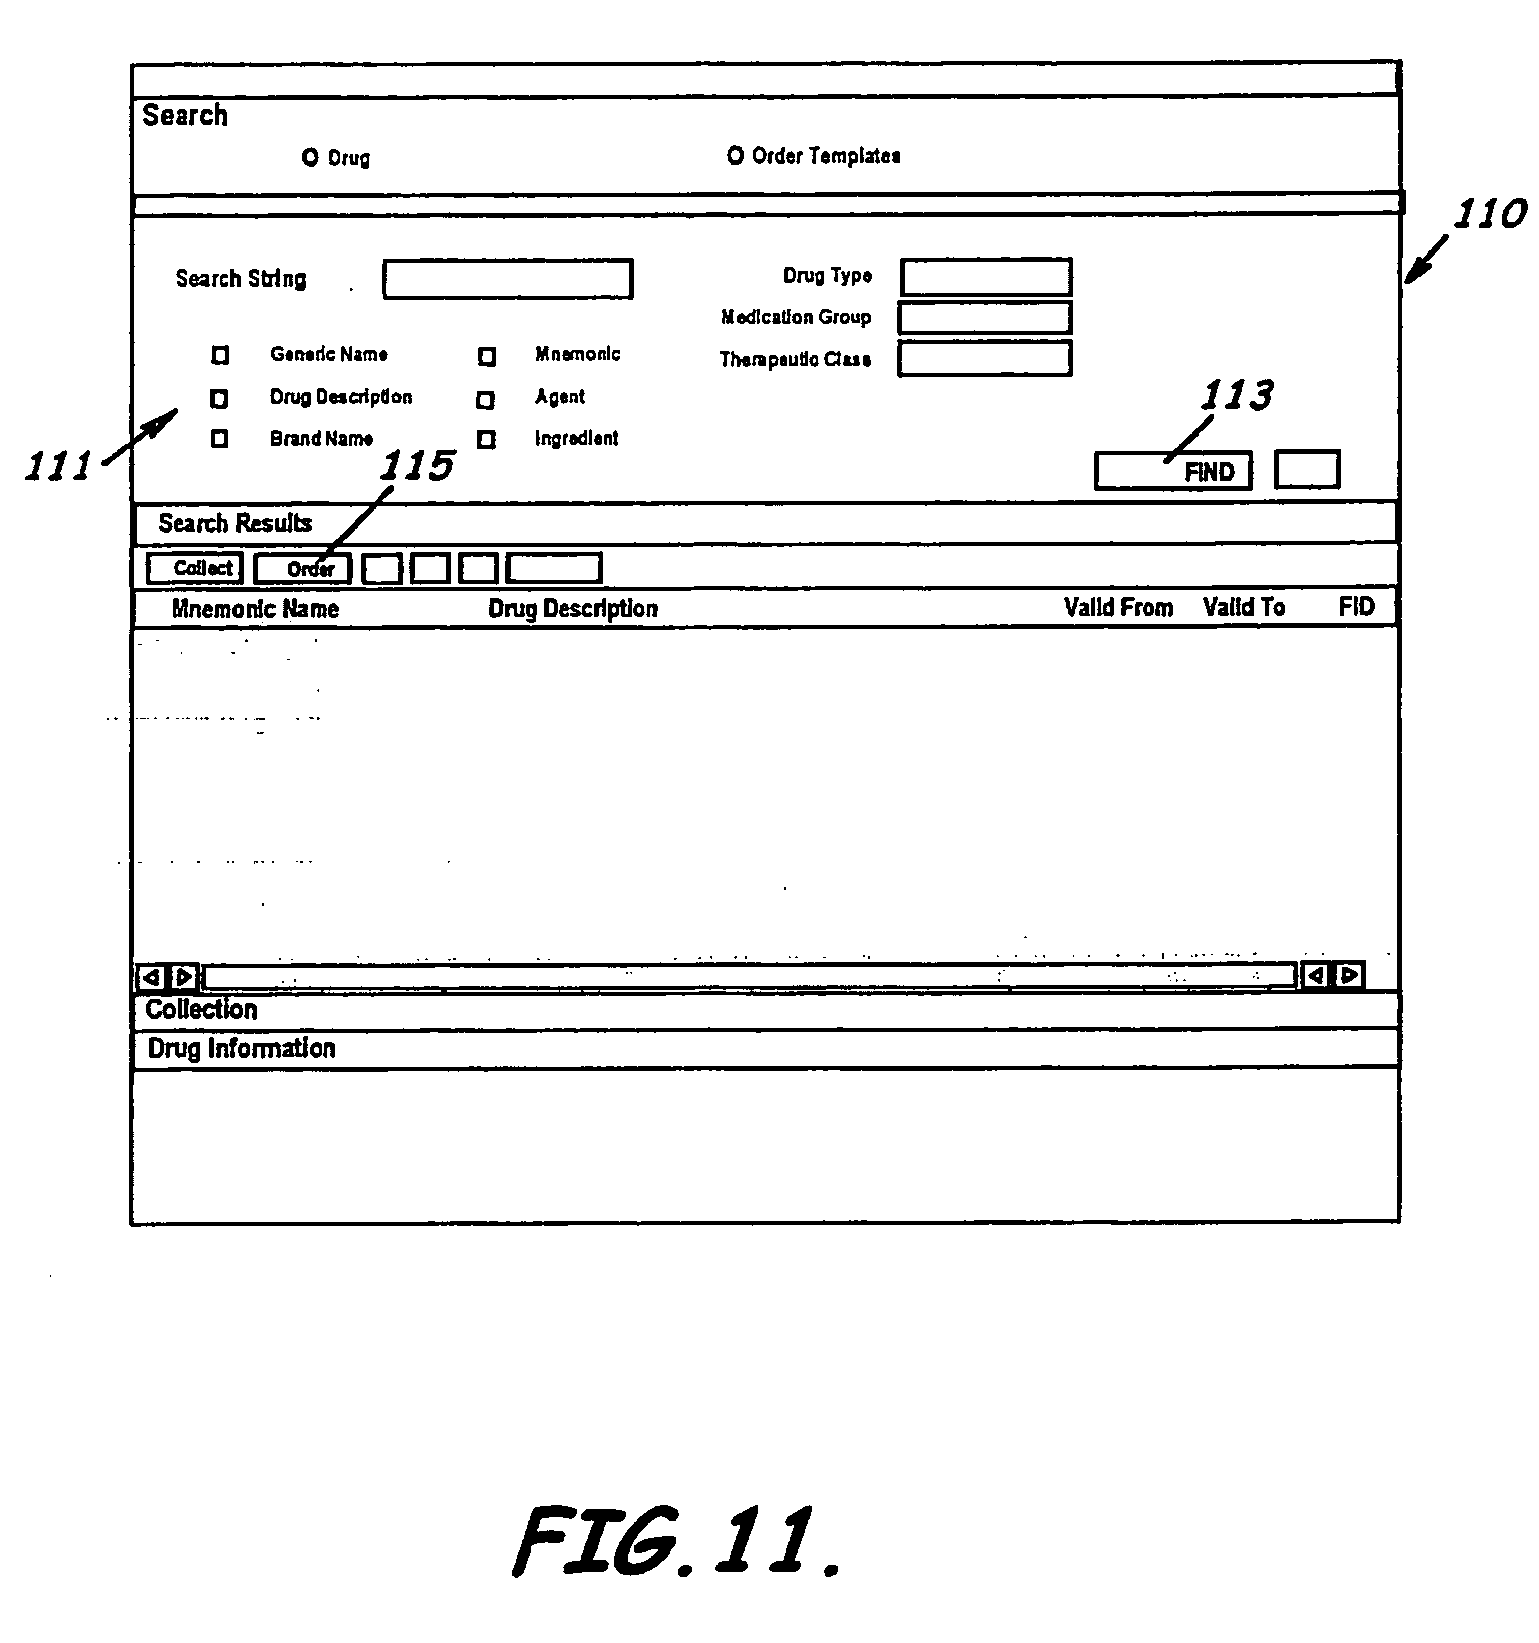 Ahfs 97 Drug Information W Supplement Annual Basic Electrical Planning For Dummies Widdershins Joinery Blog Open Image In New Window Array Patent Us20060149416 System And Software Of Enhanced Pharmacy Rh